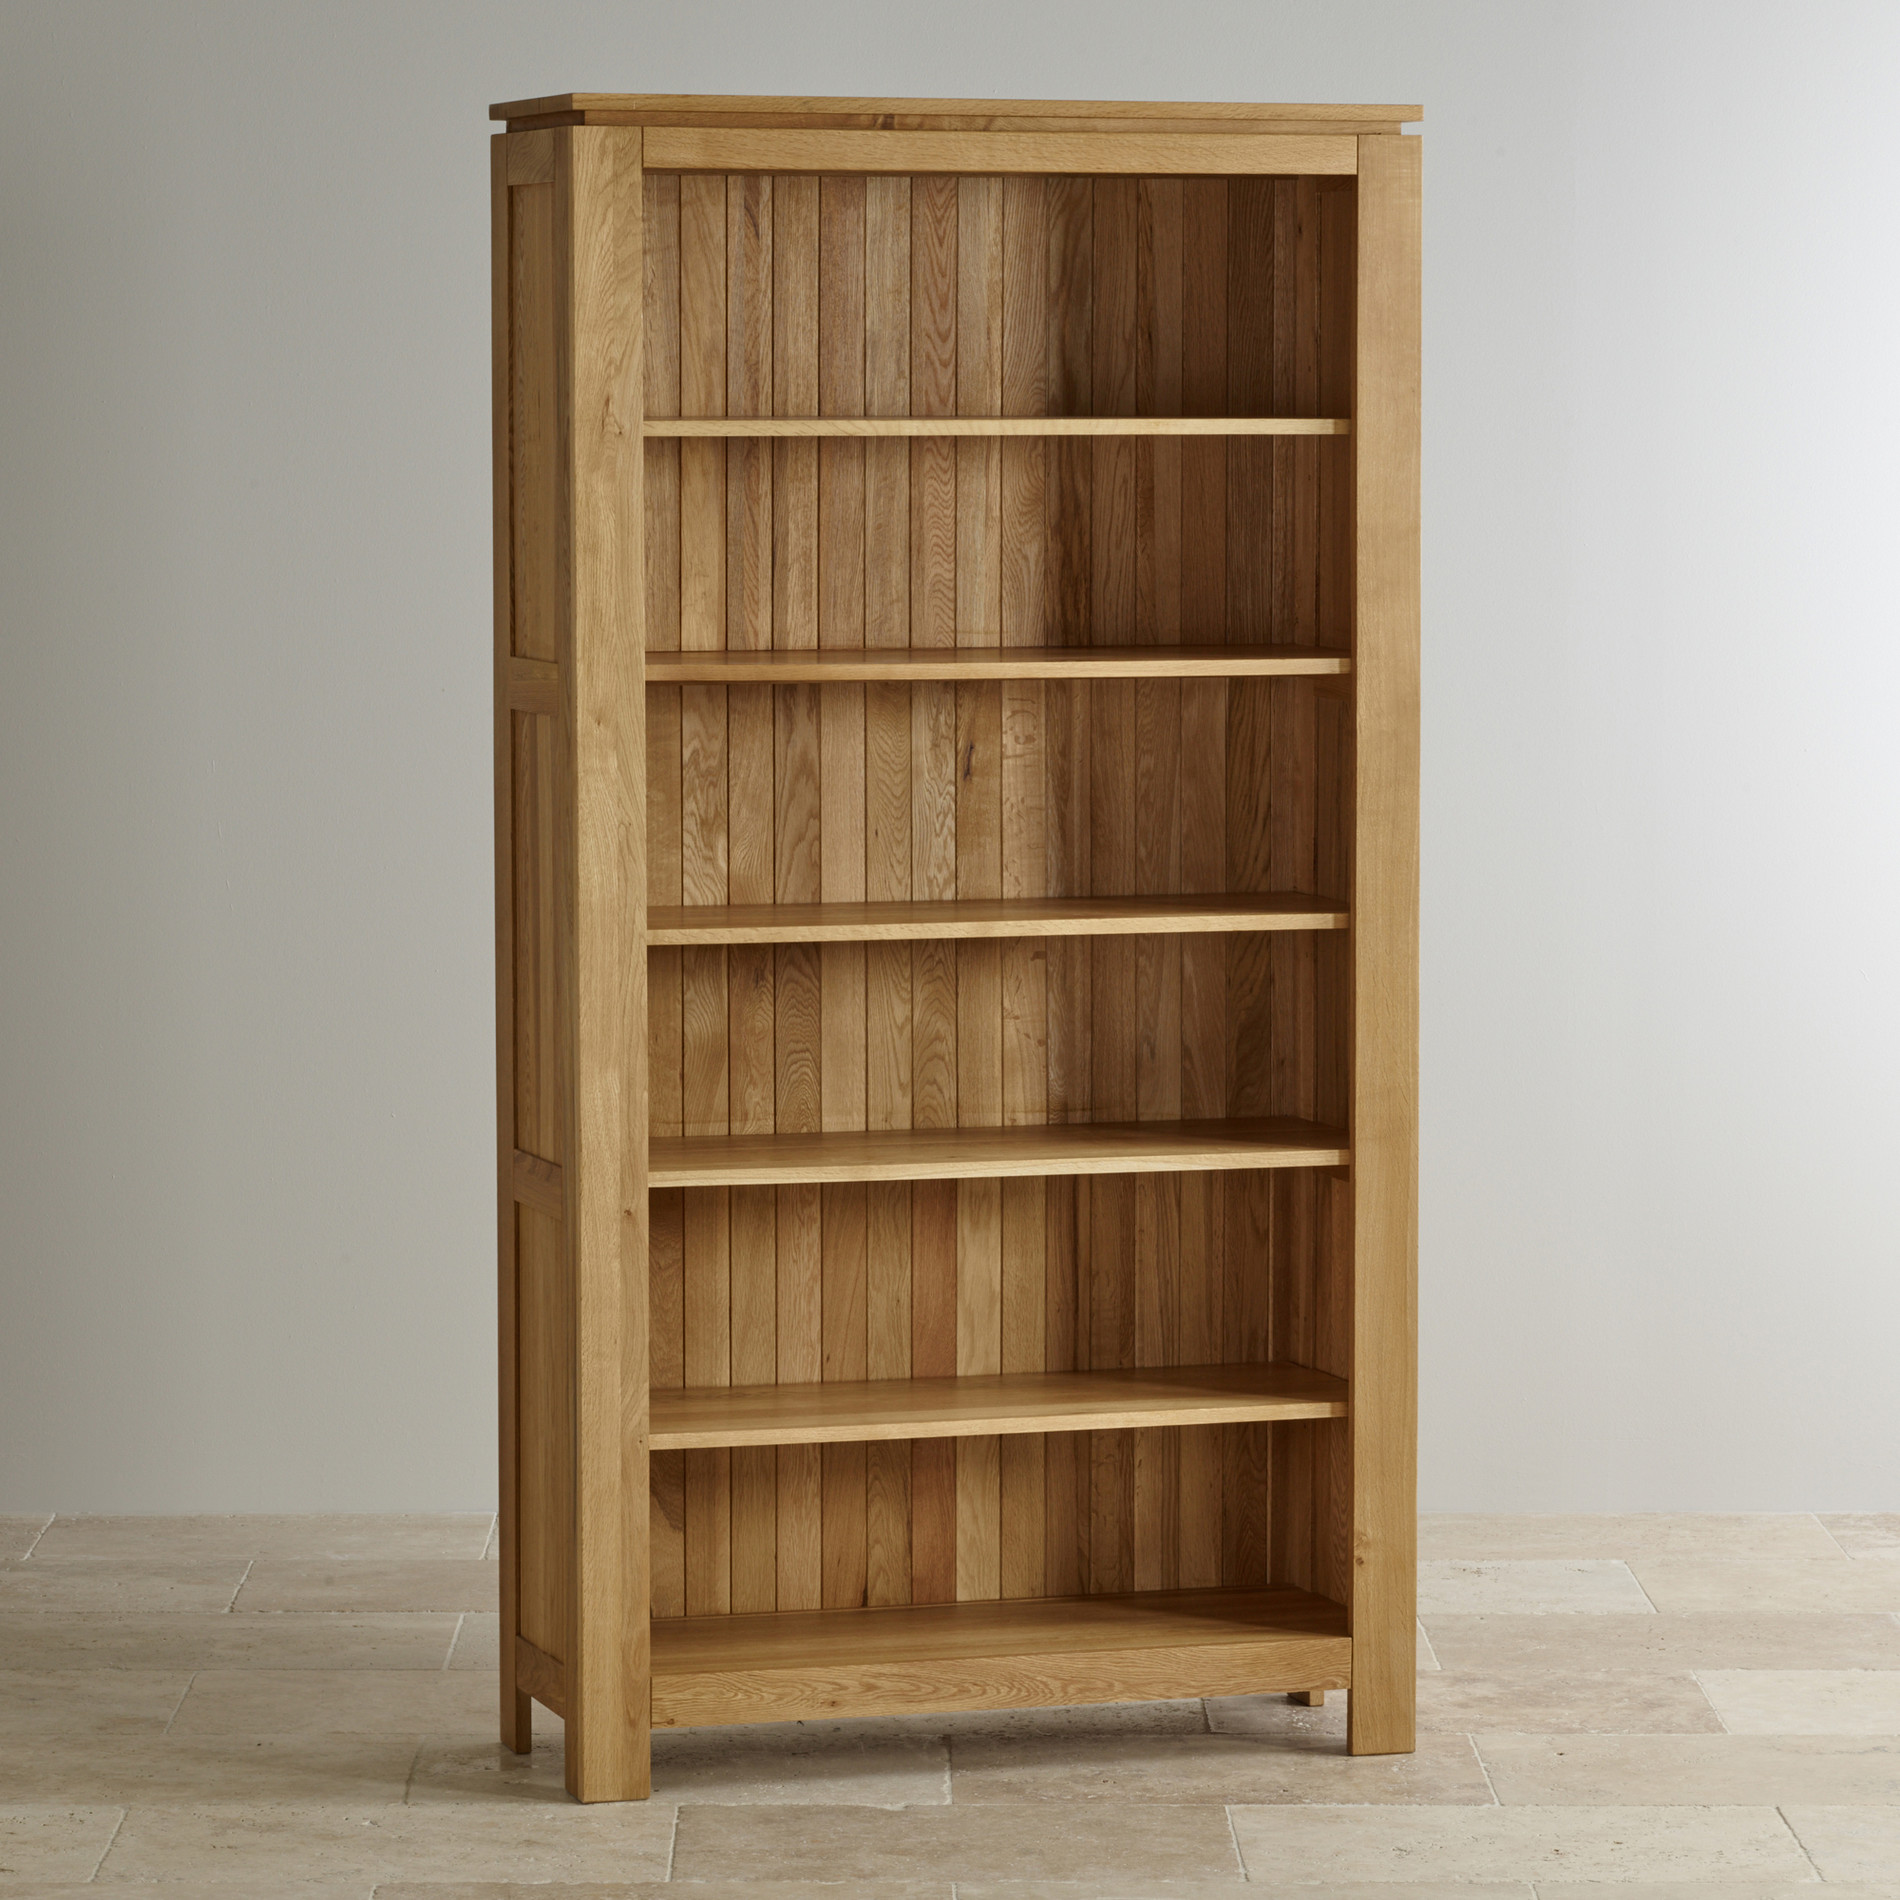 Chic Galway Natural Solid Oak Bookcase | Living Room Furniture solid oak bookcase